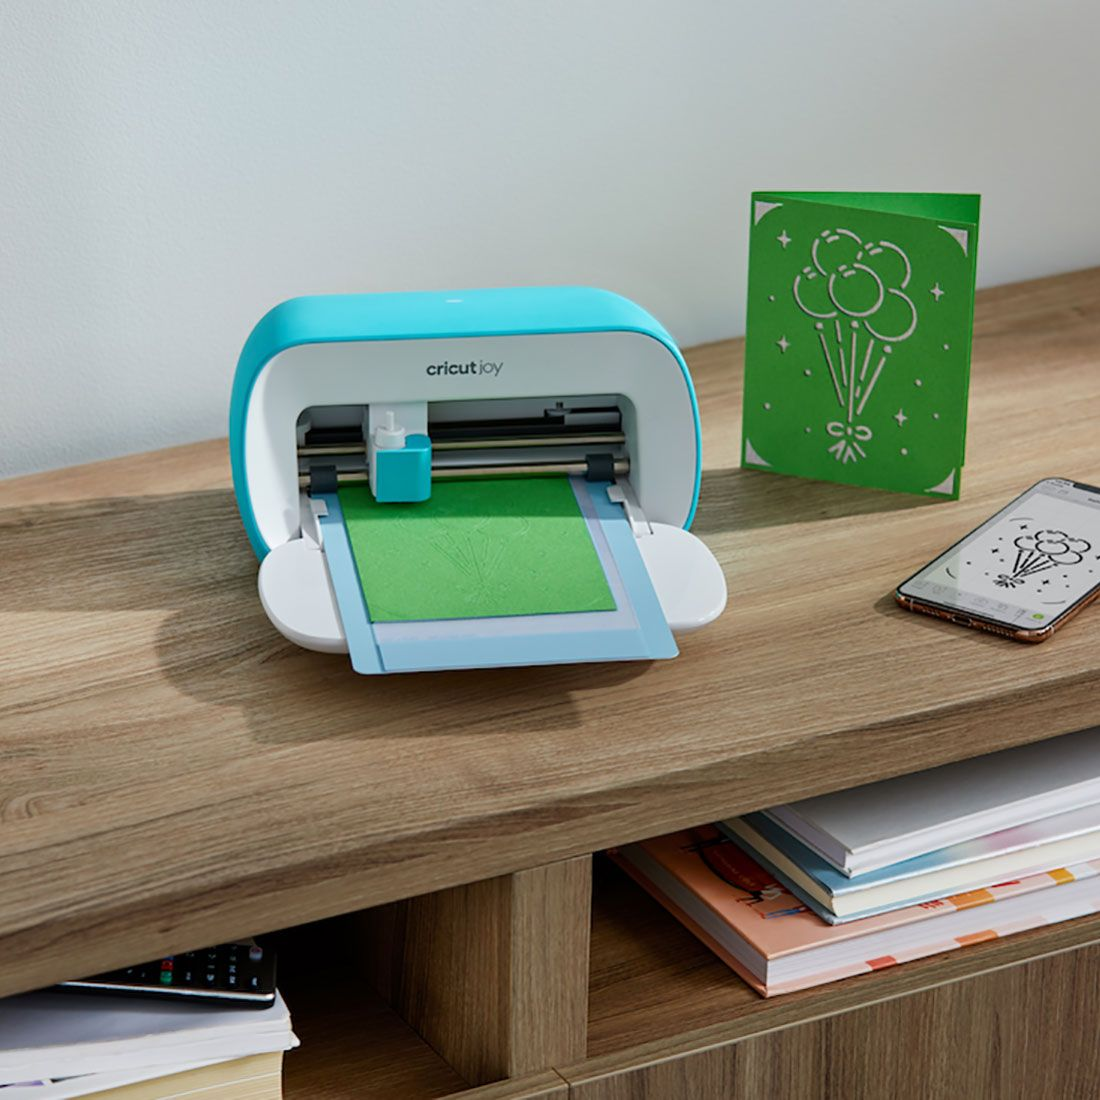 cricut joy guide and overview